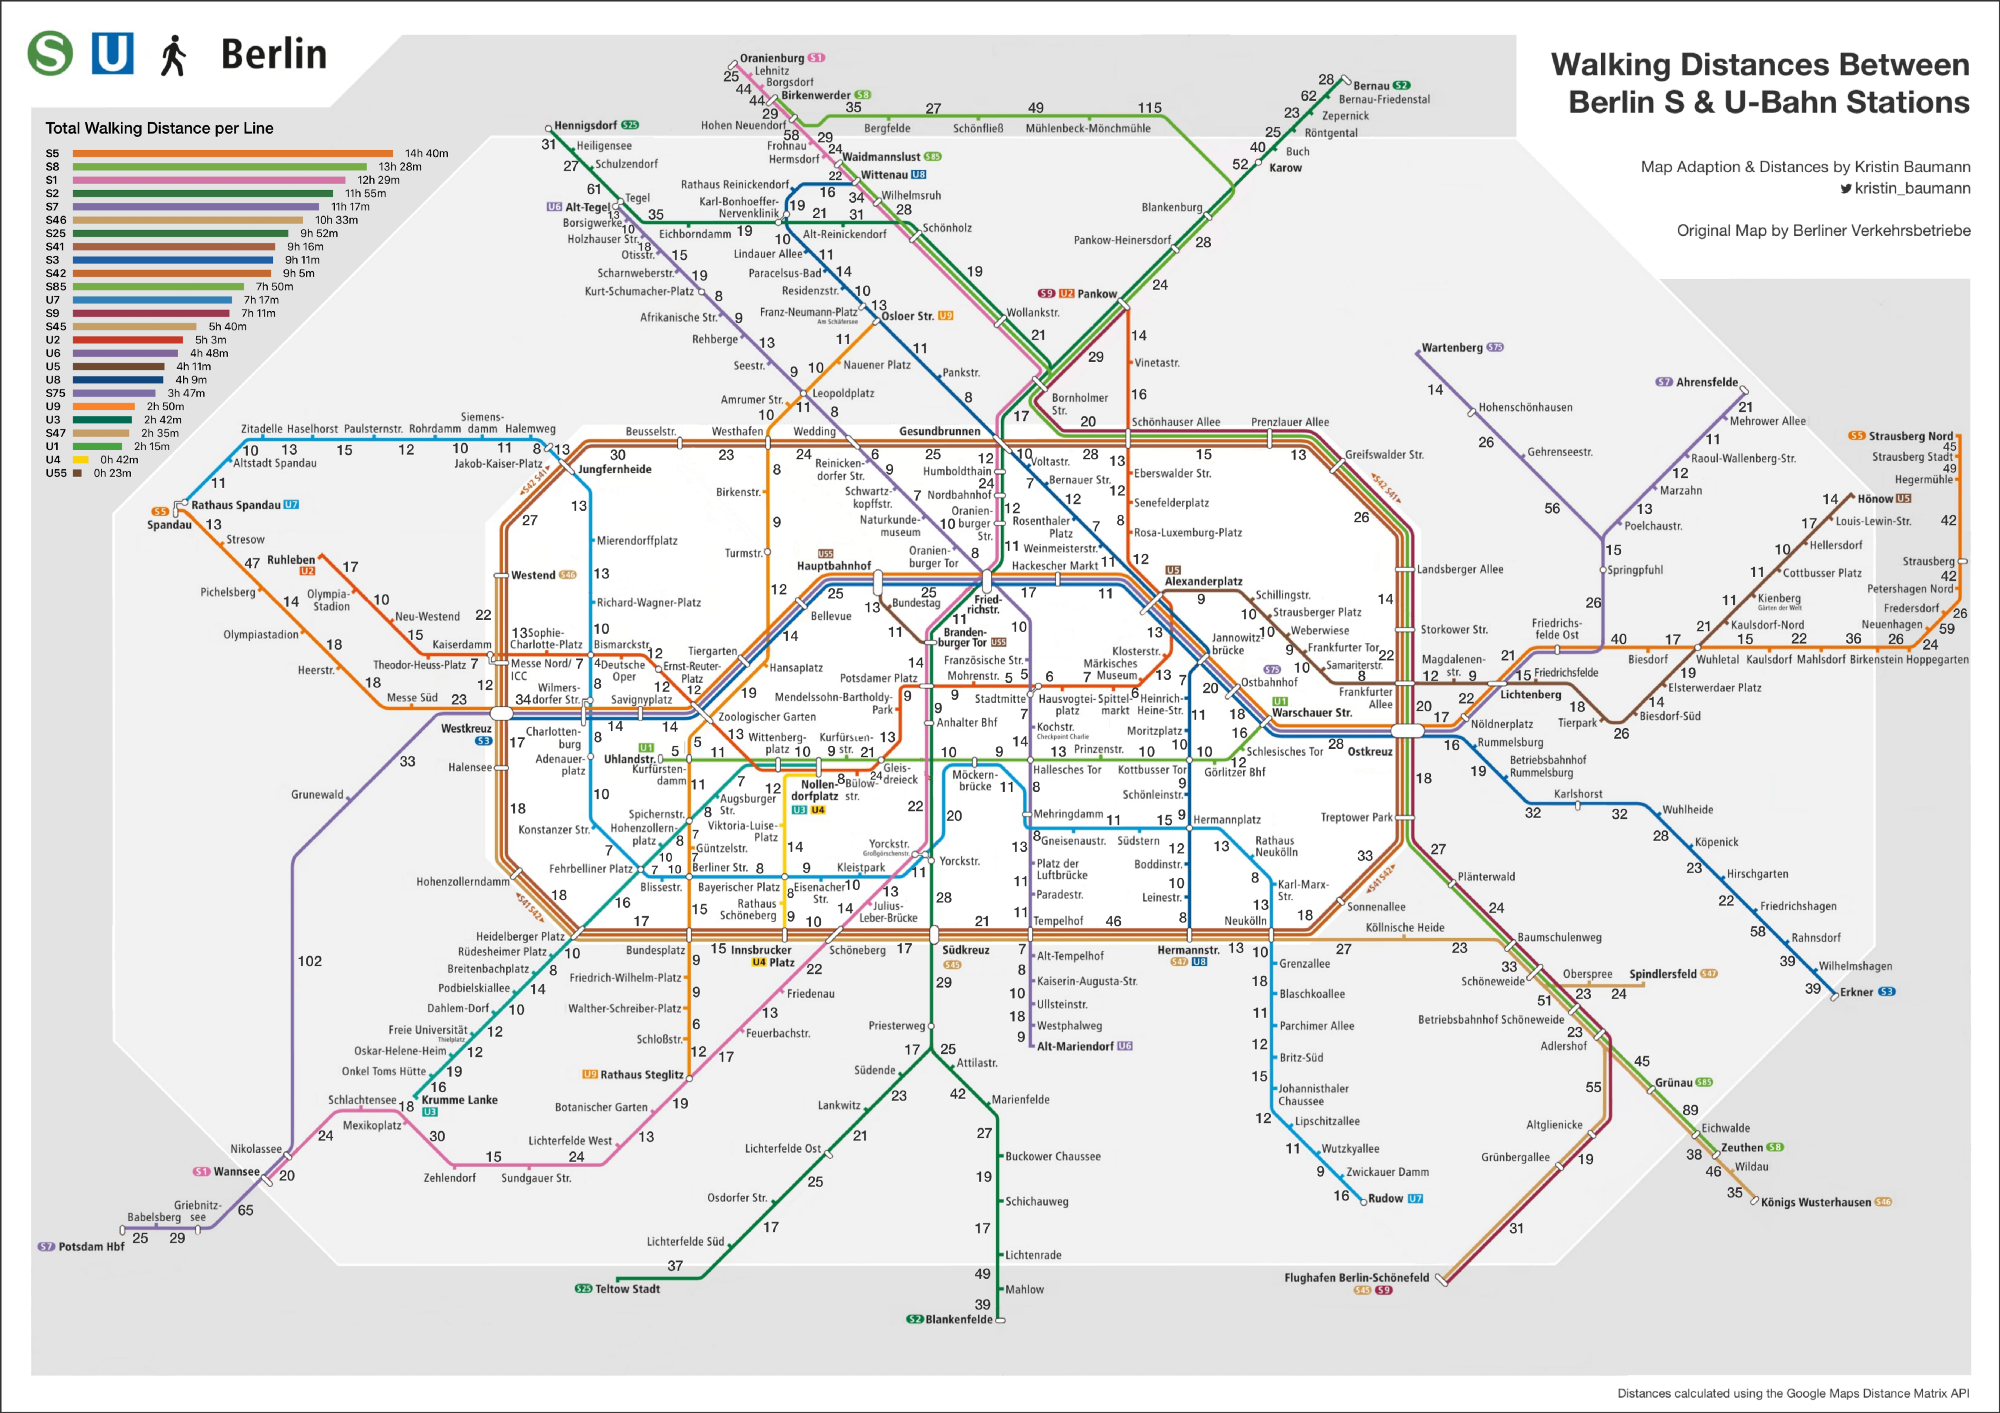 Walking The Berlin S UBahn Network Kristin Baumann Medium - Berlin us bahn map